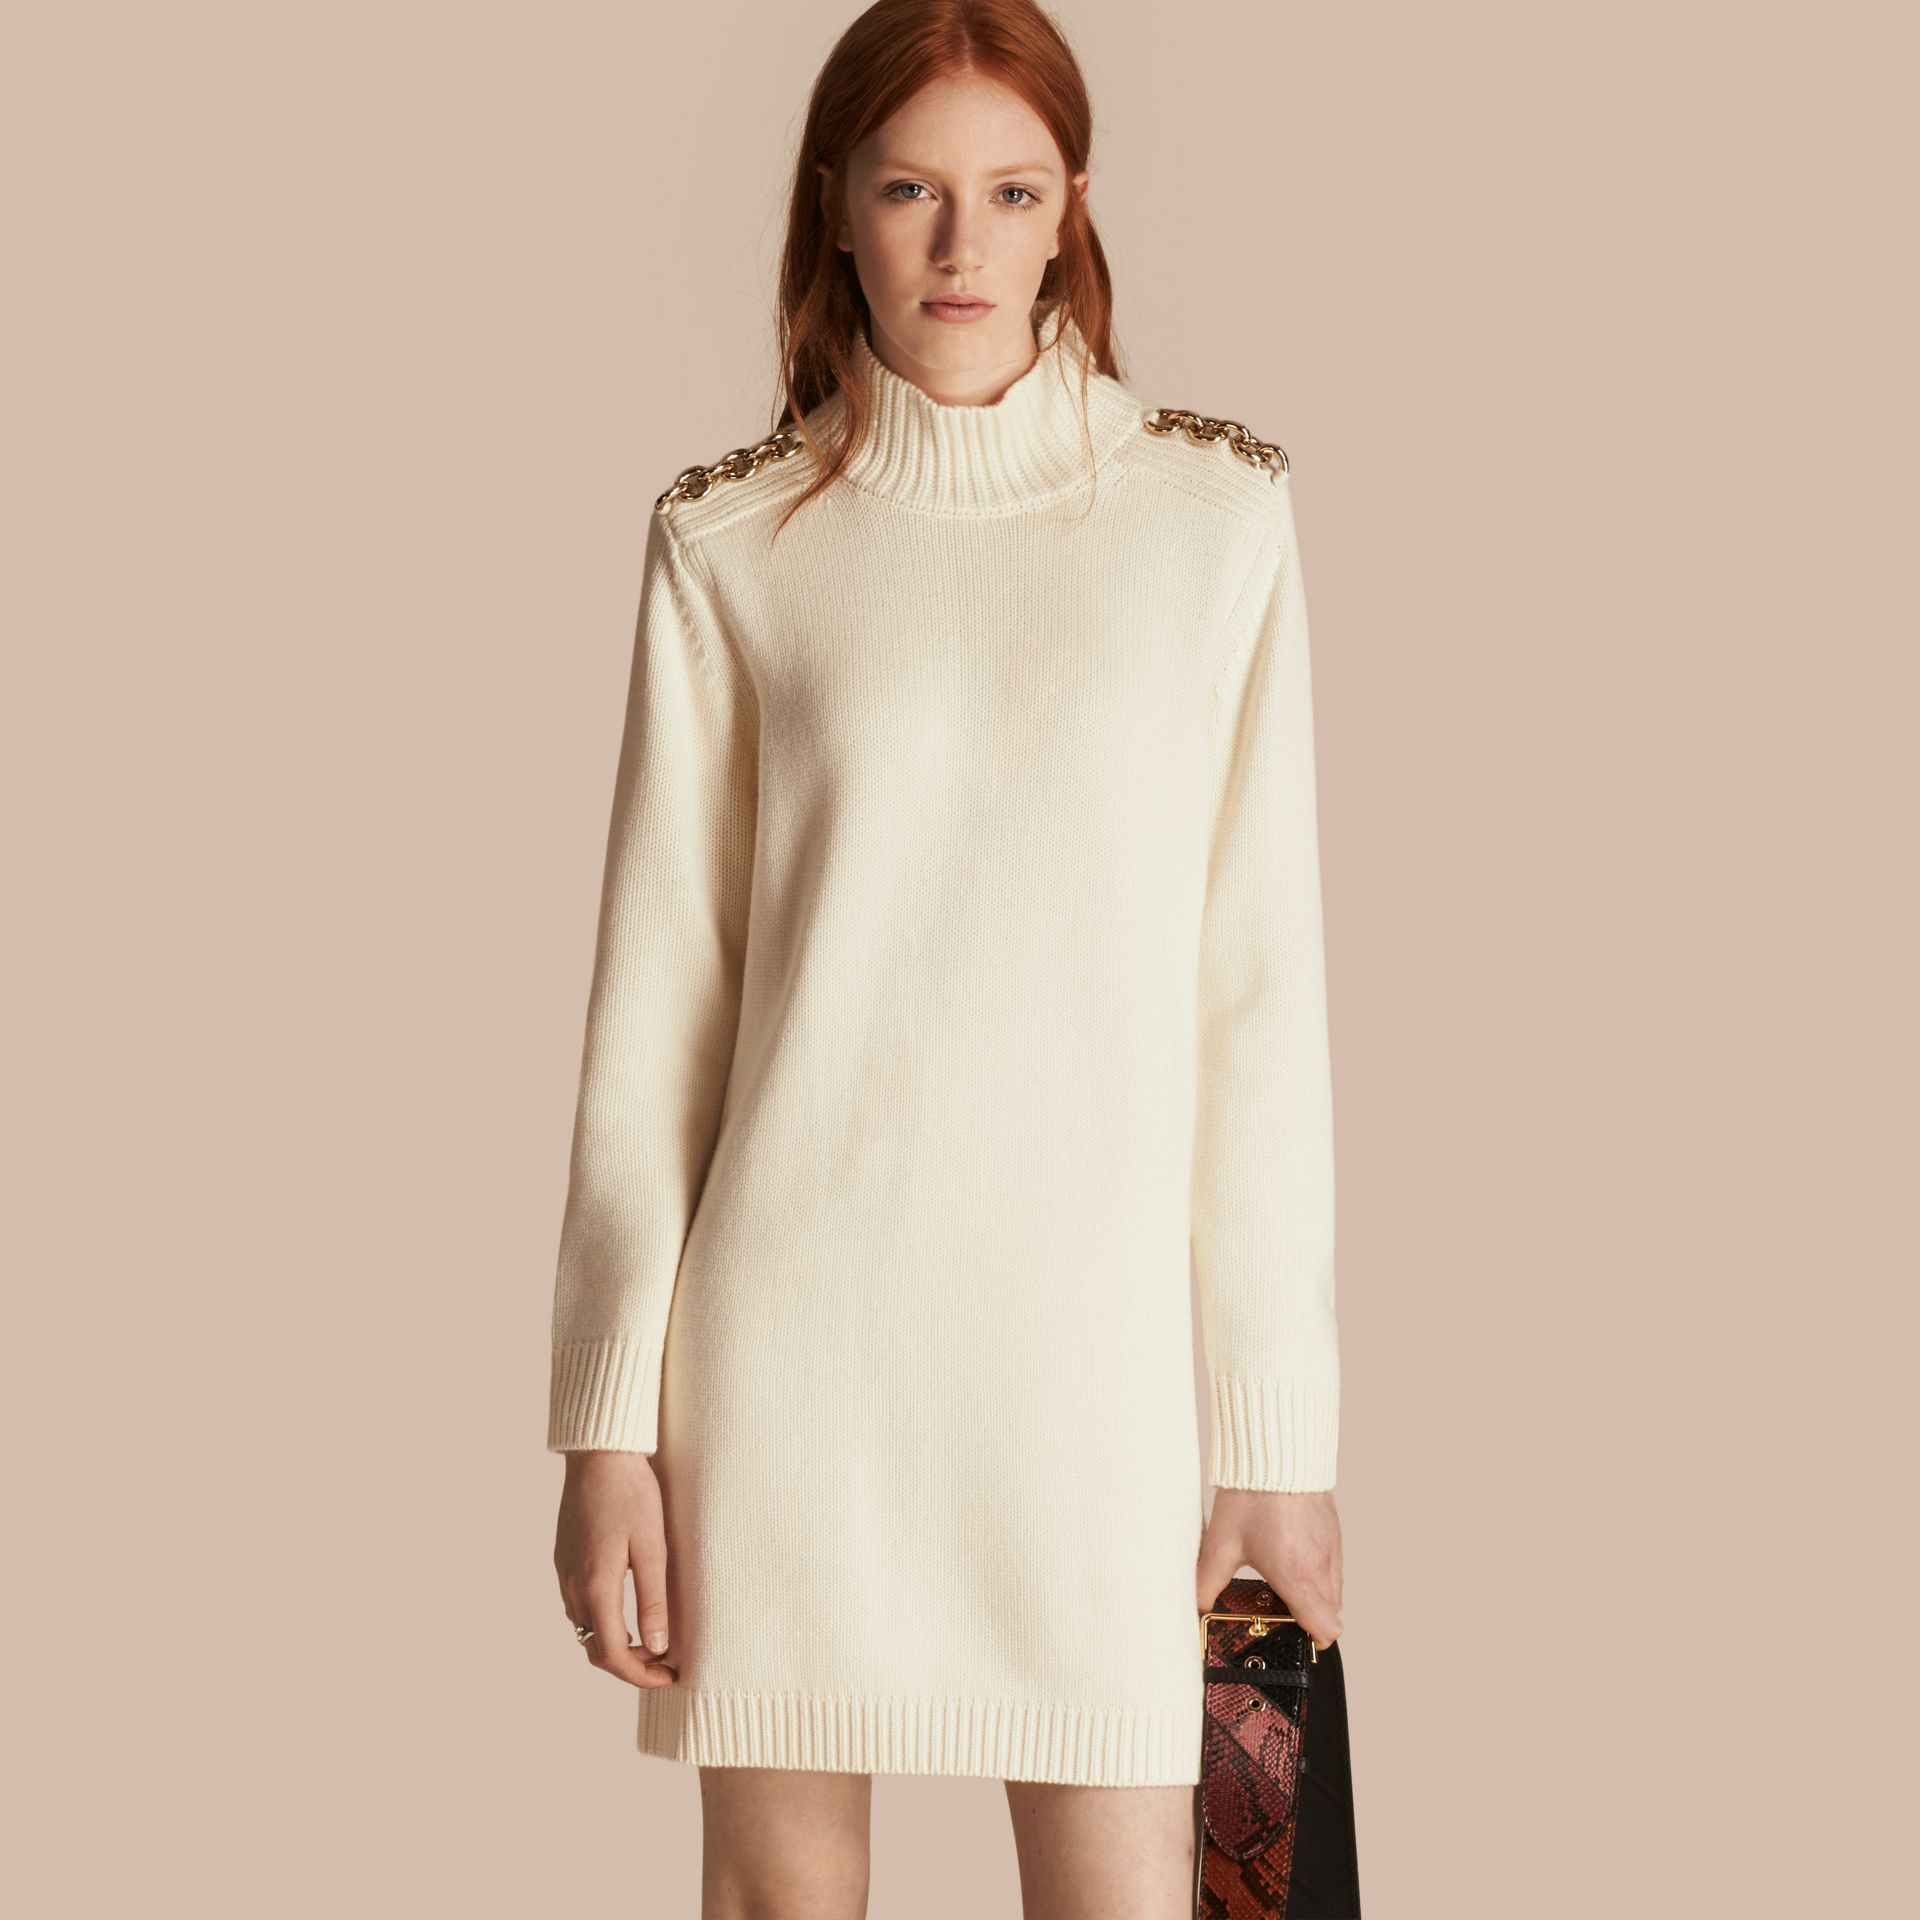 Natural white Regimental Detail Wool Cashmere High-neck Dress - gallery image 1